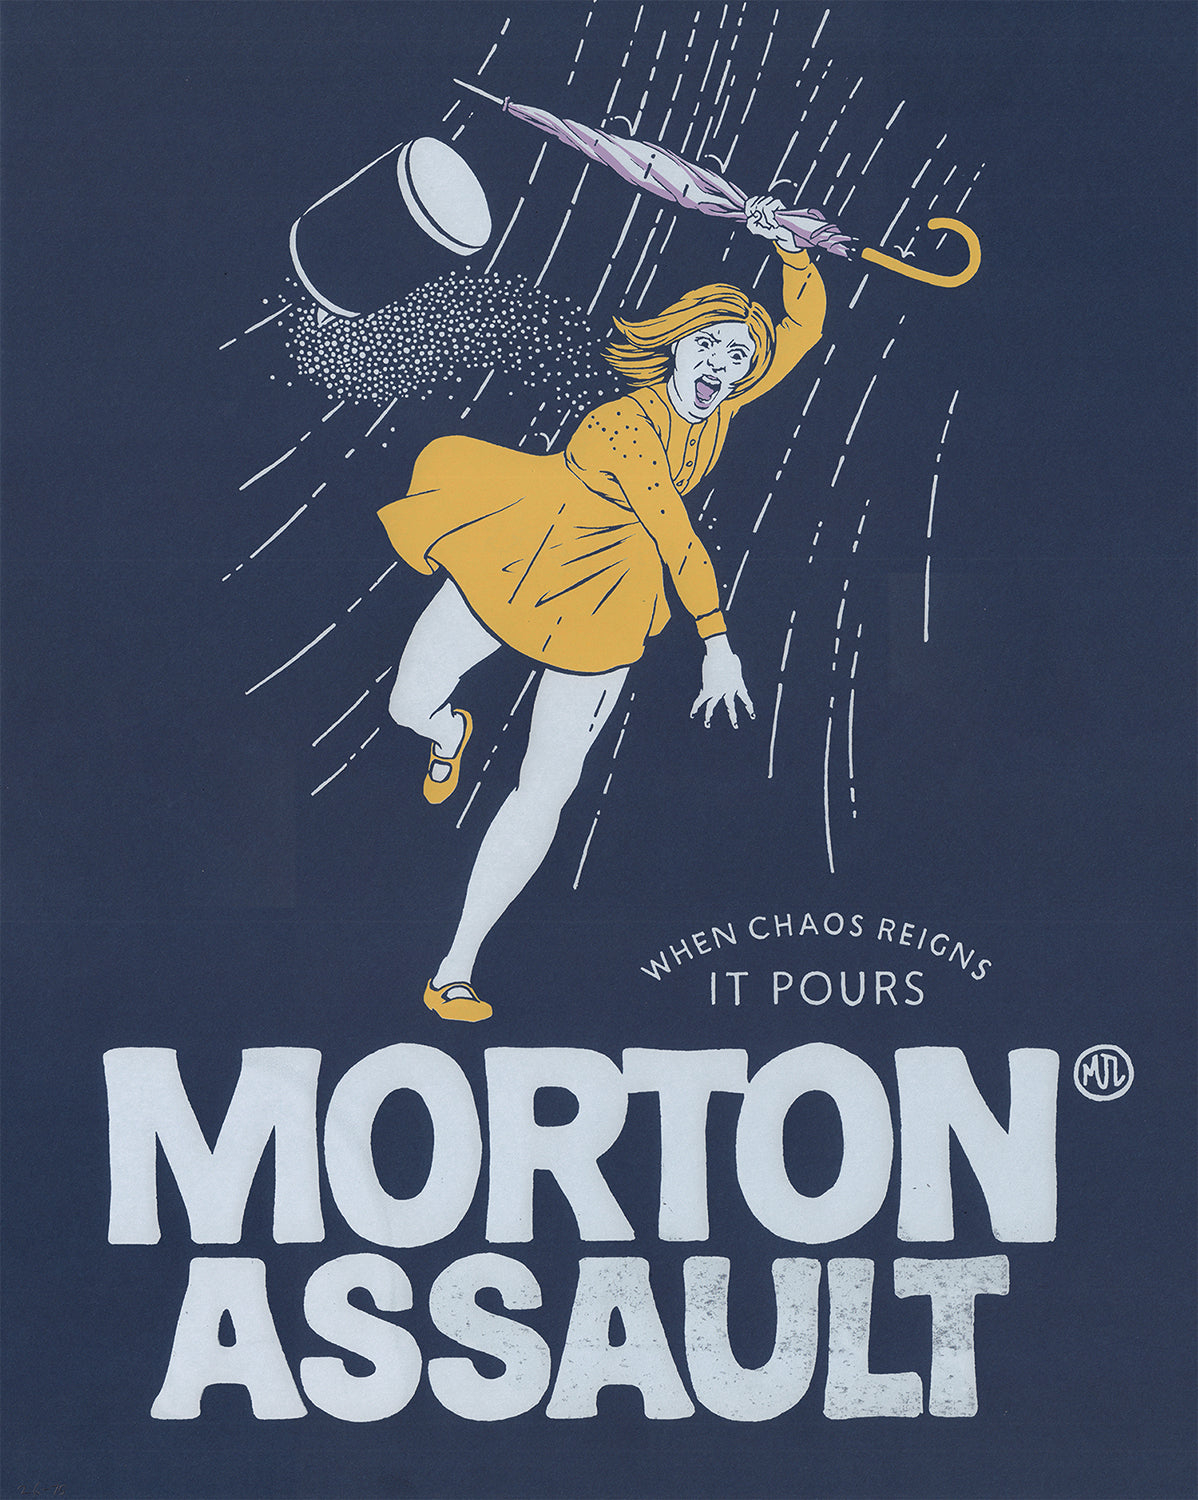 Morton Assault Print by Michael Lauritano